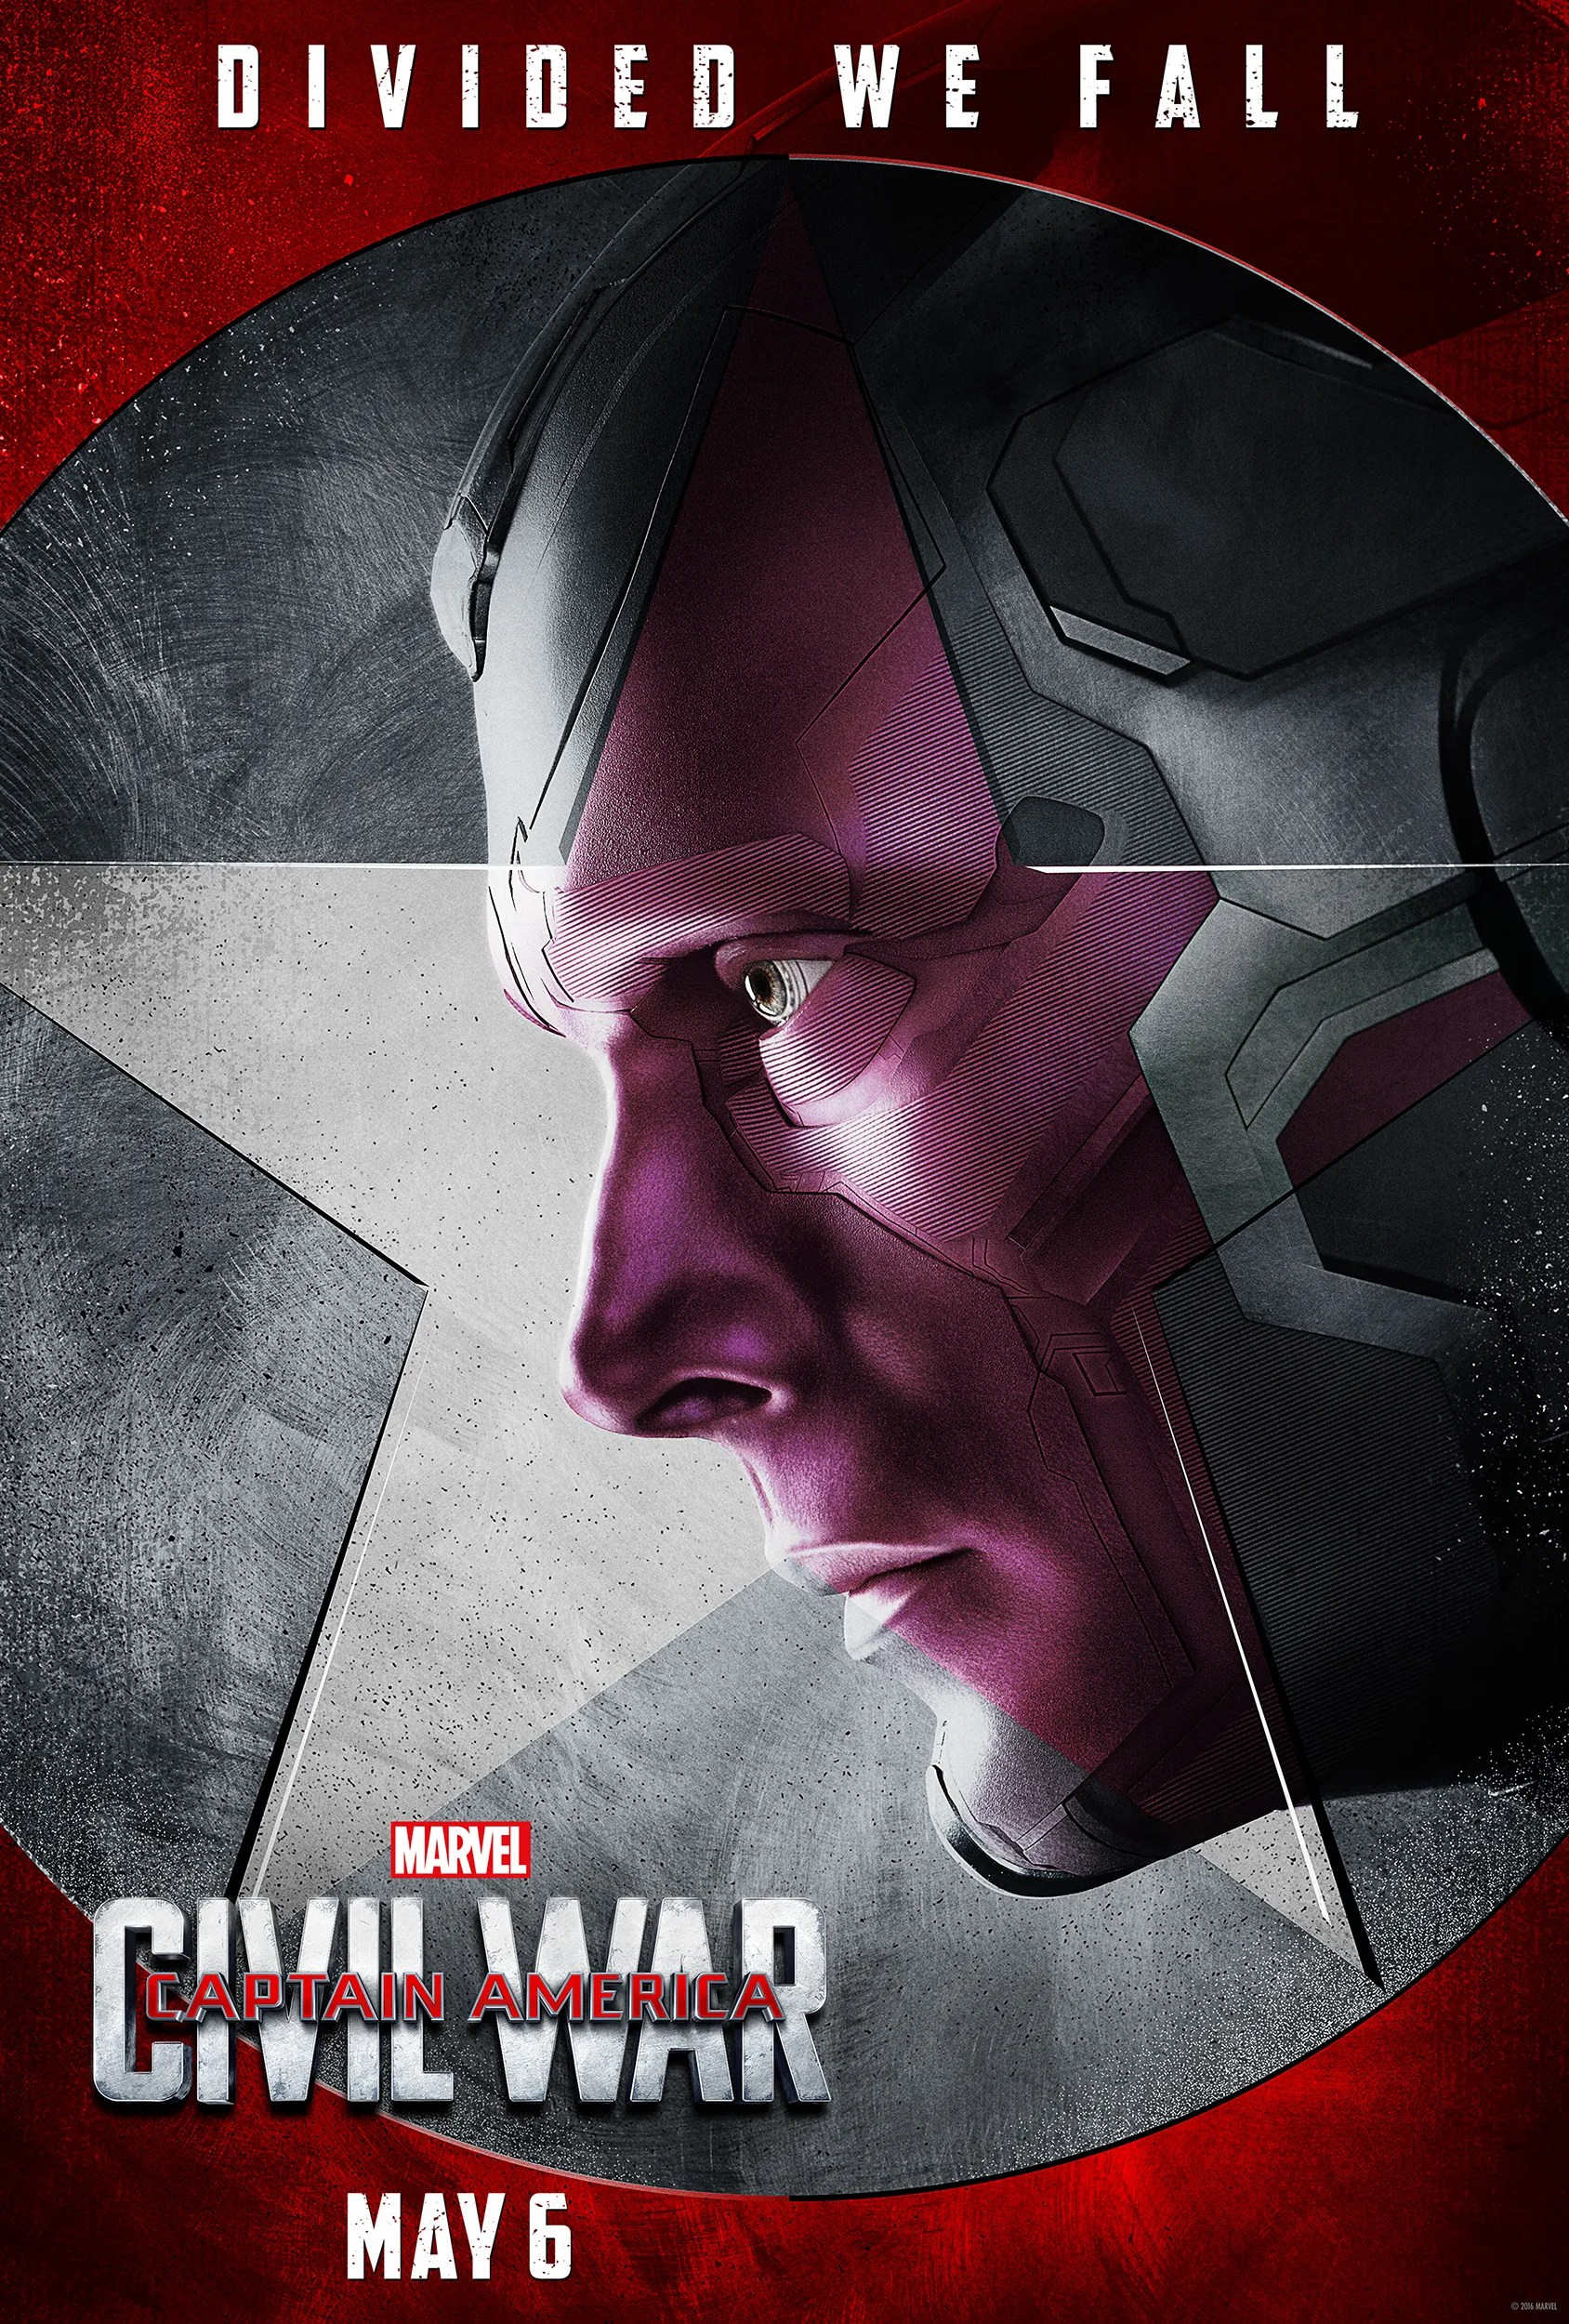 Image result for Captain America: Civil War vision poster